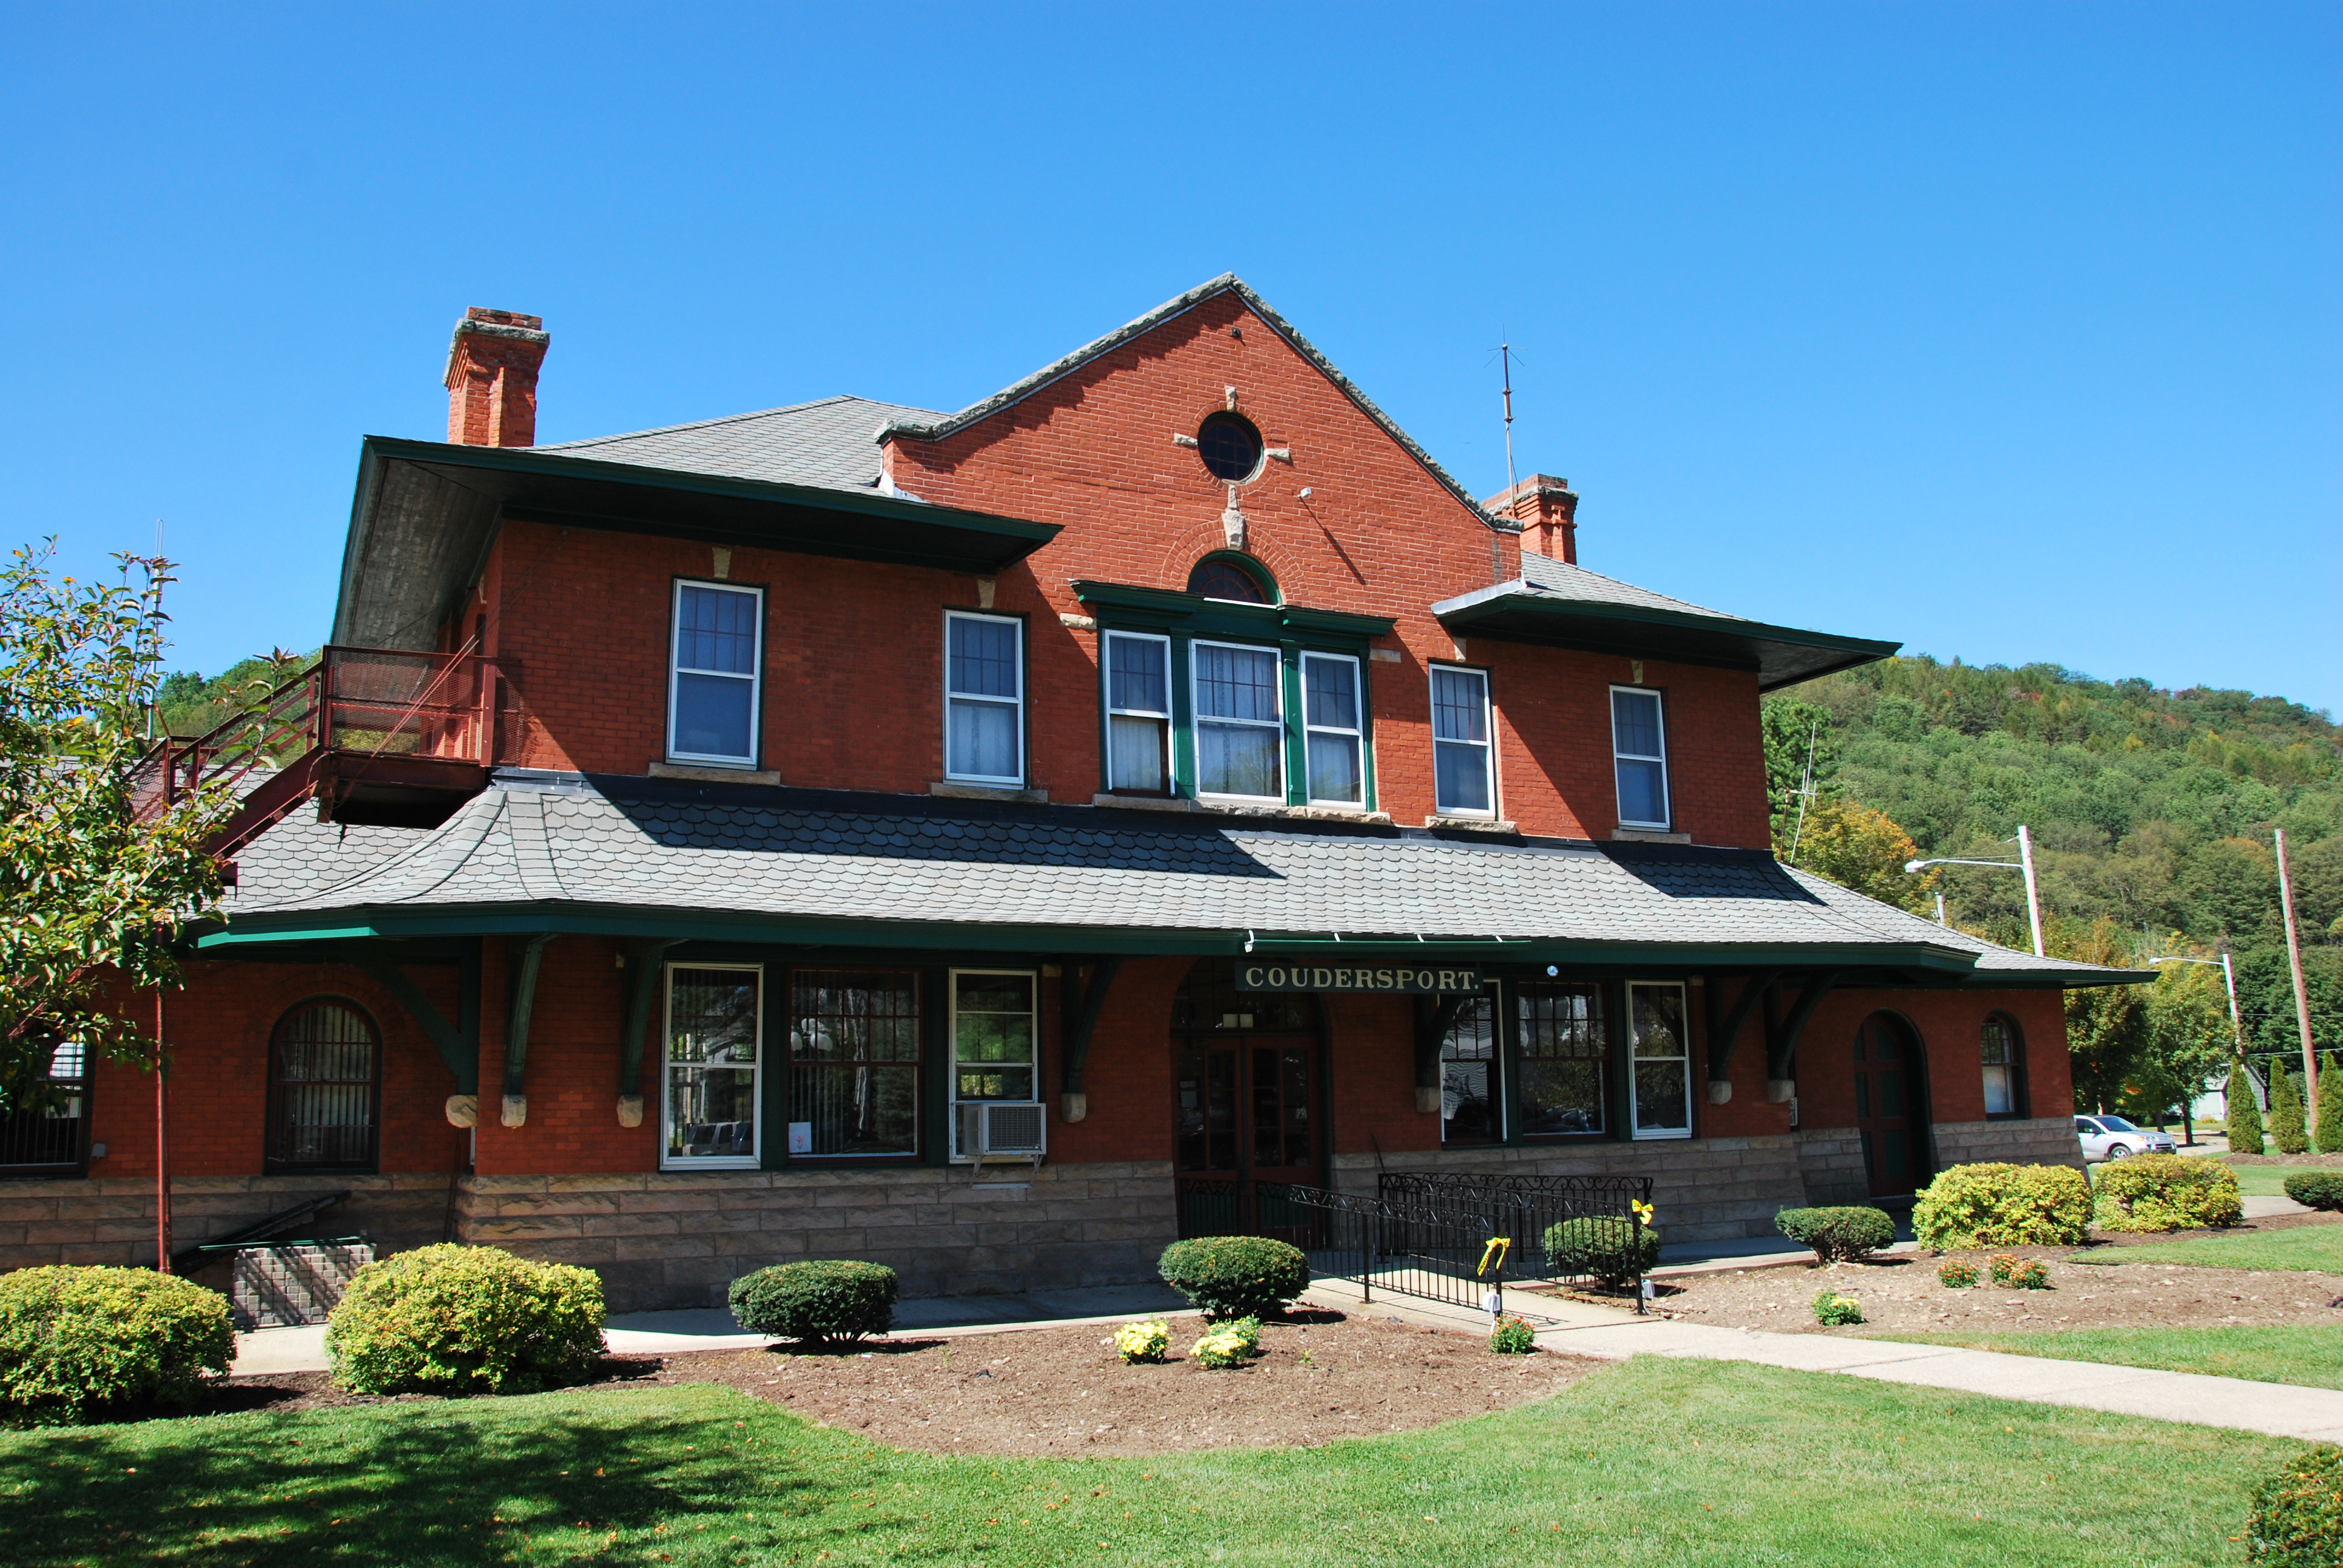 Awe Inspiring Coudersport And Port Allegany Railroad Station Wikipedia Download Free Architecture Designs Rallybritishbridgeorg